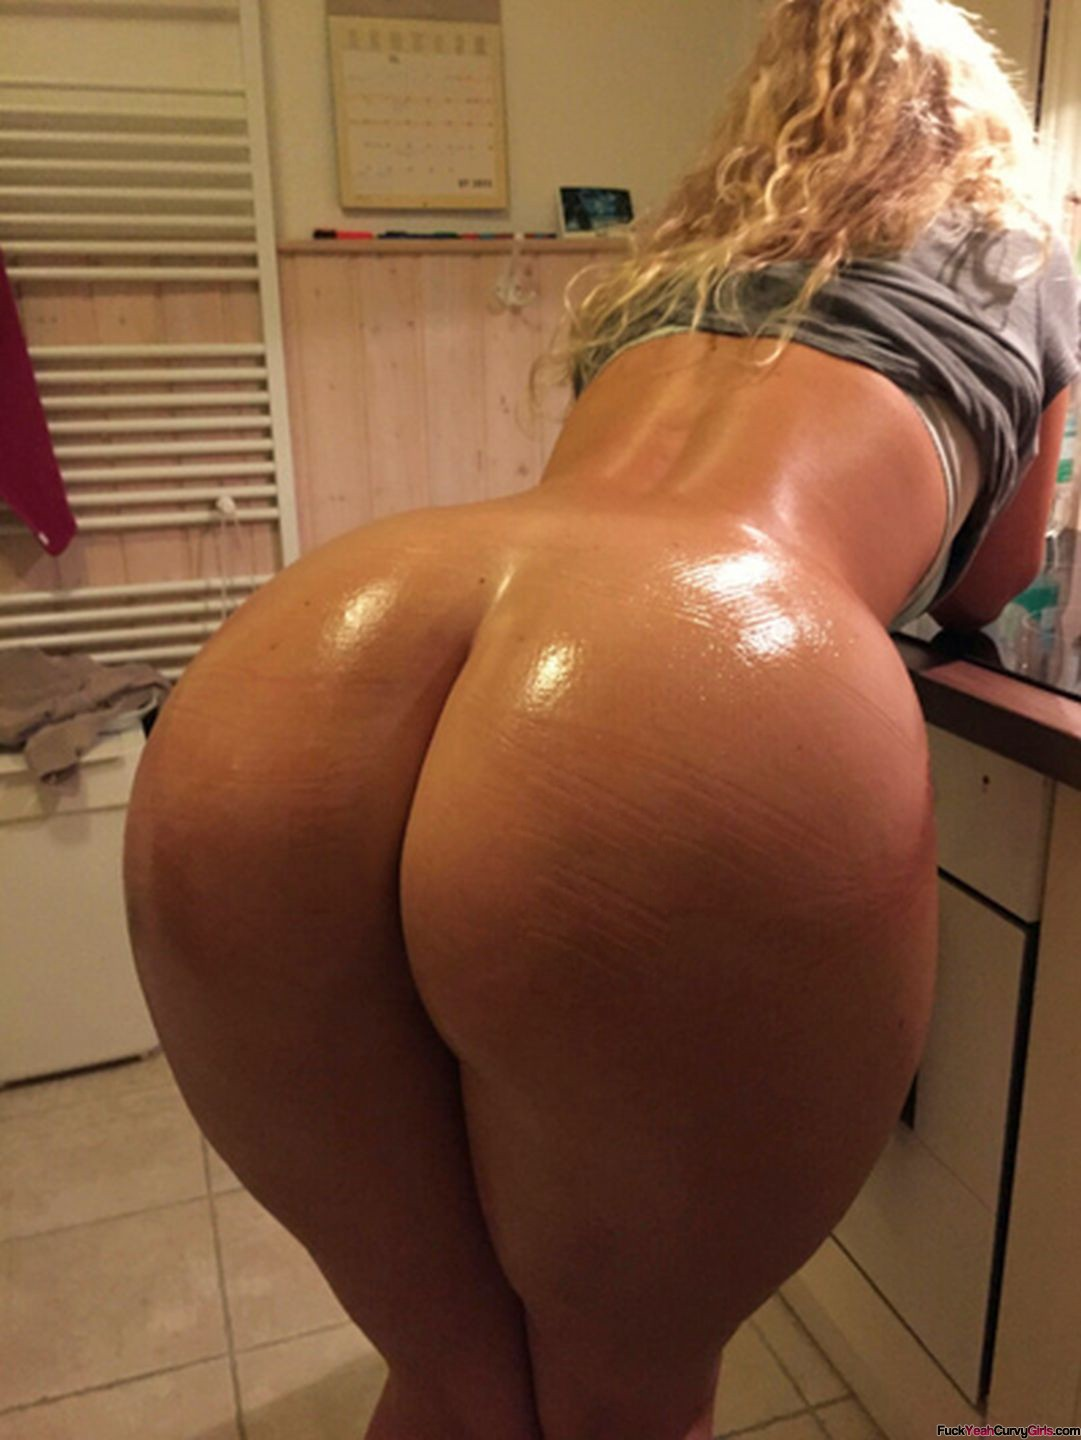 Are both oiled ass fucking tumblr Simply splendid!